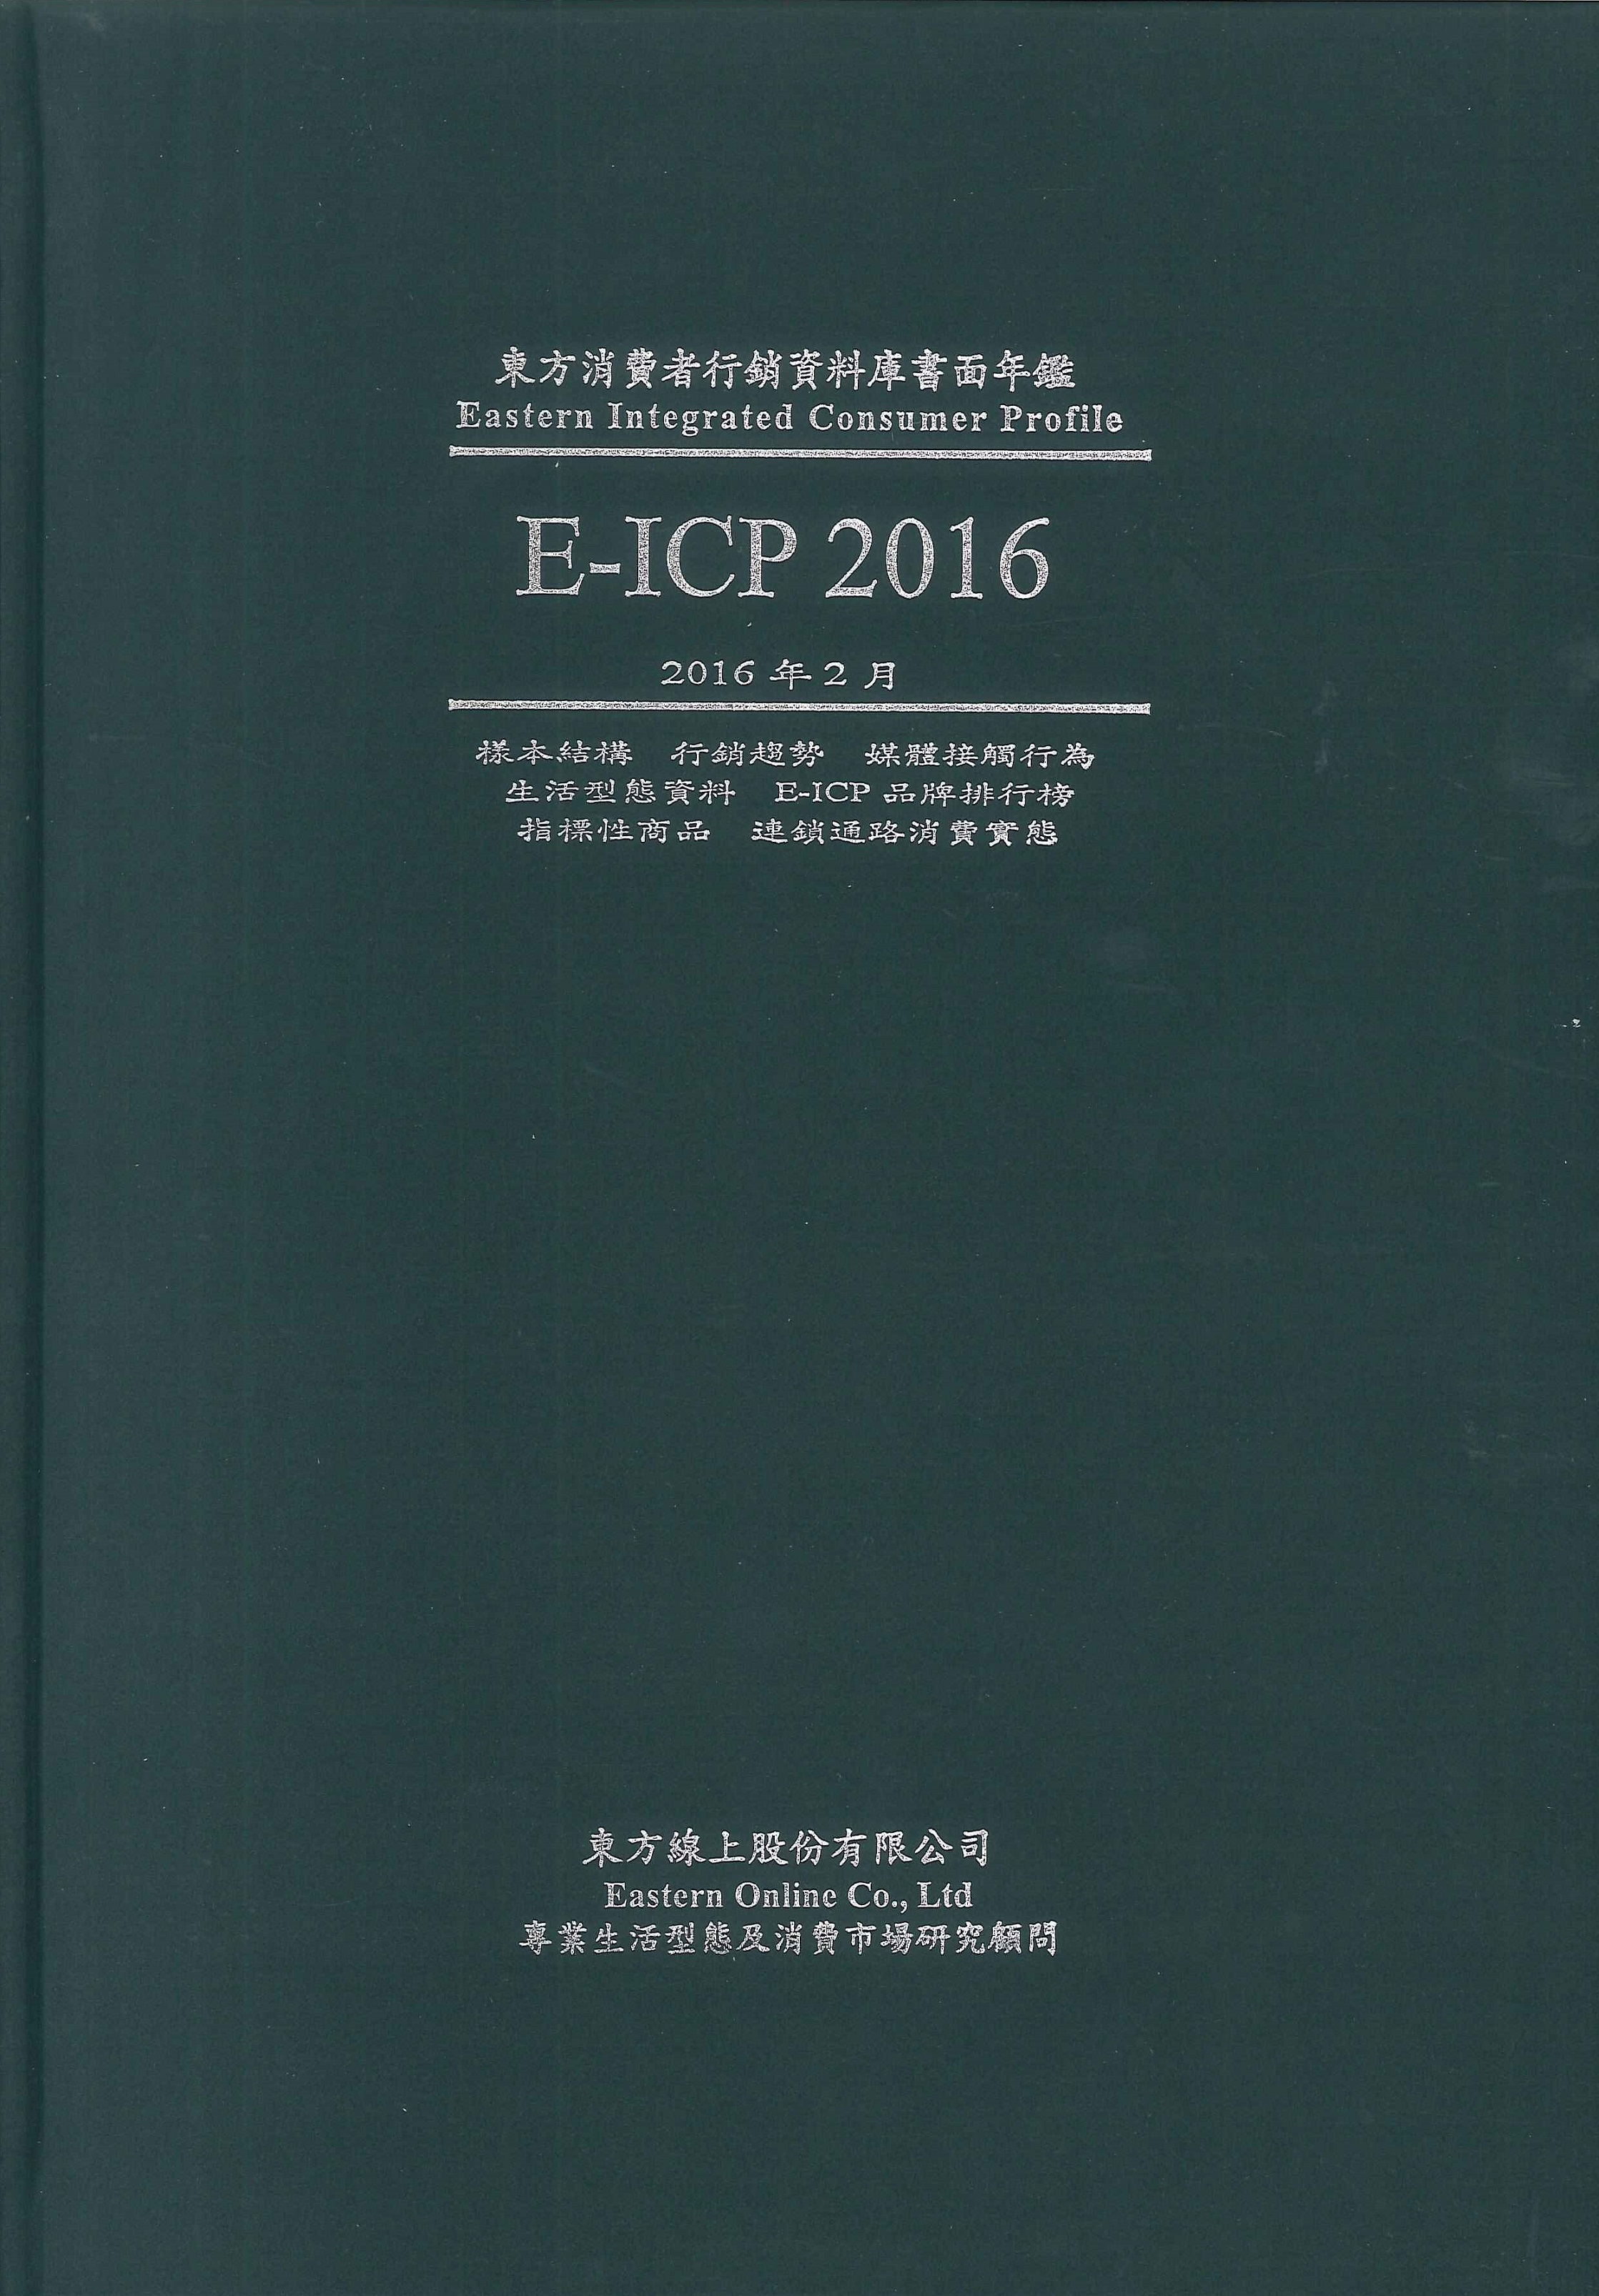 東方消費者行銷資料庫書面年鑑.2016=Eastern integrated consumer profile